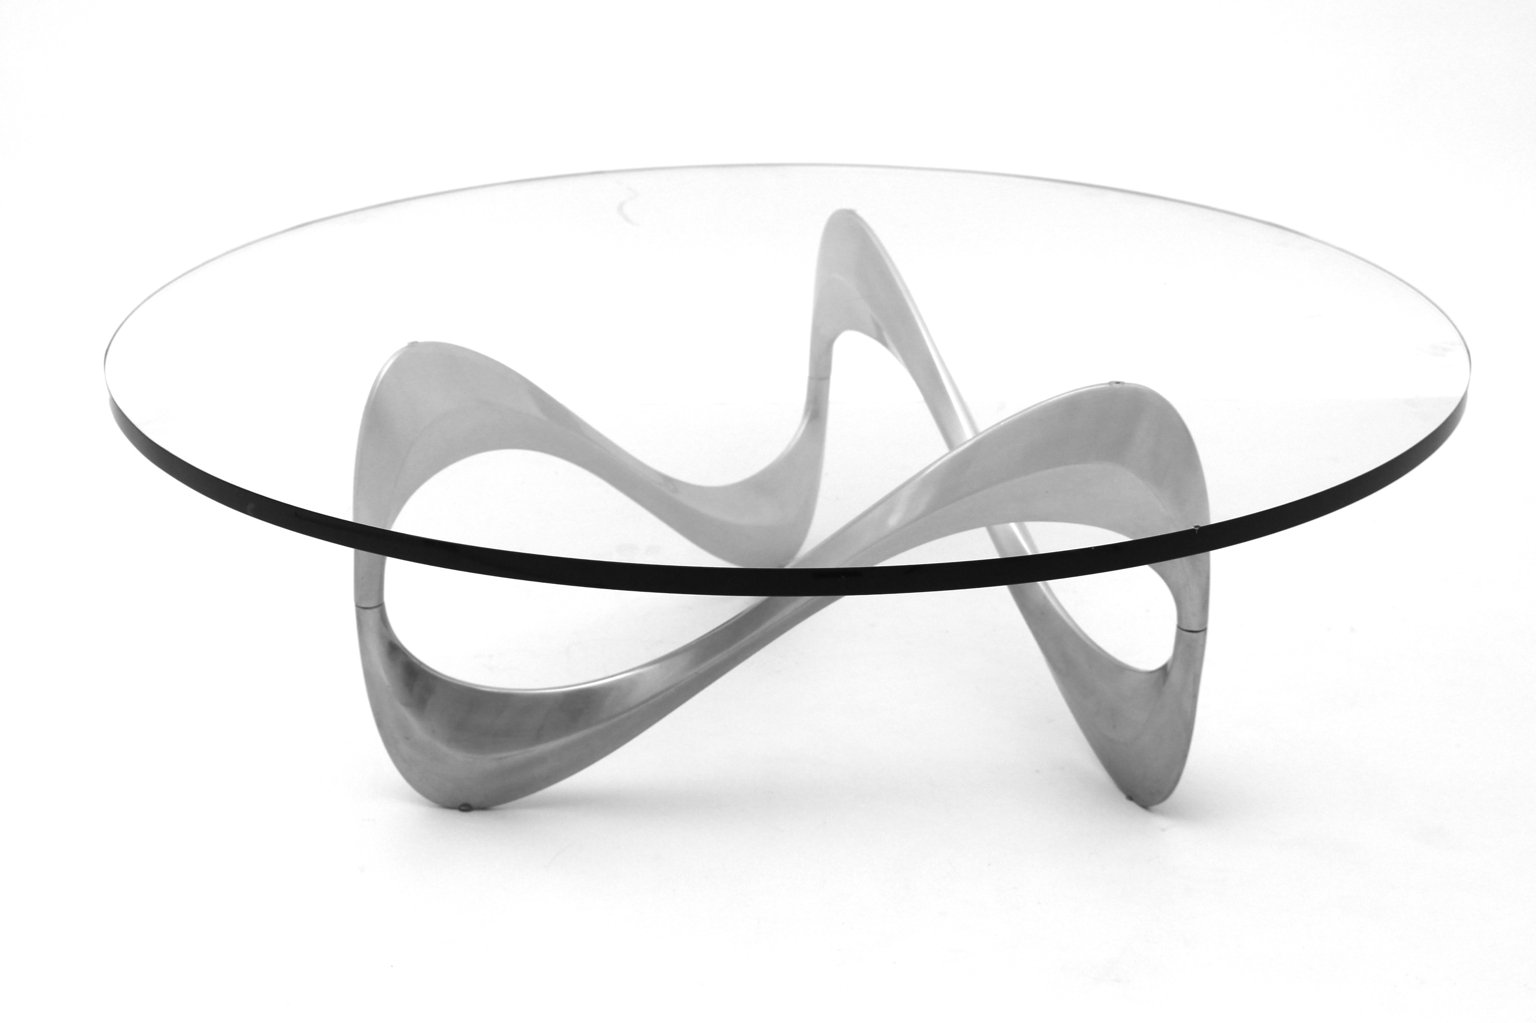 Vintage aluminum coffee table by knut hesterberg for sale at pamono geotapseo Gallery